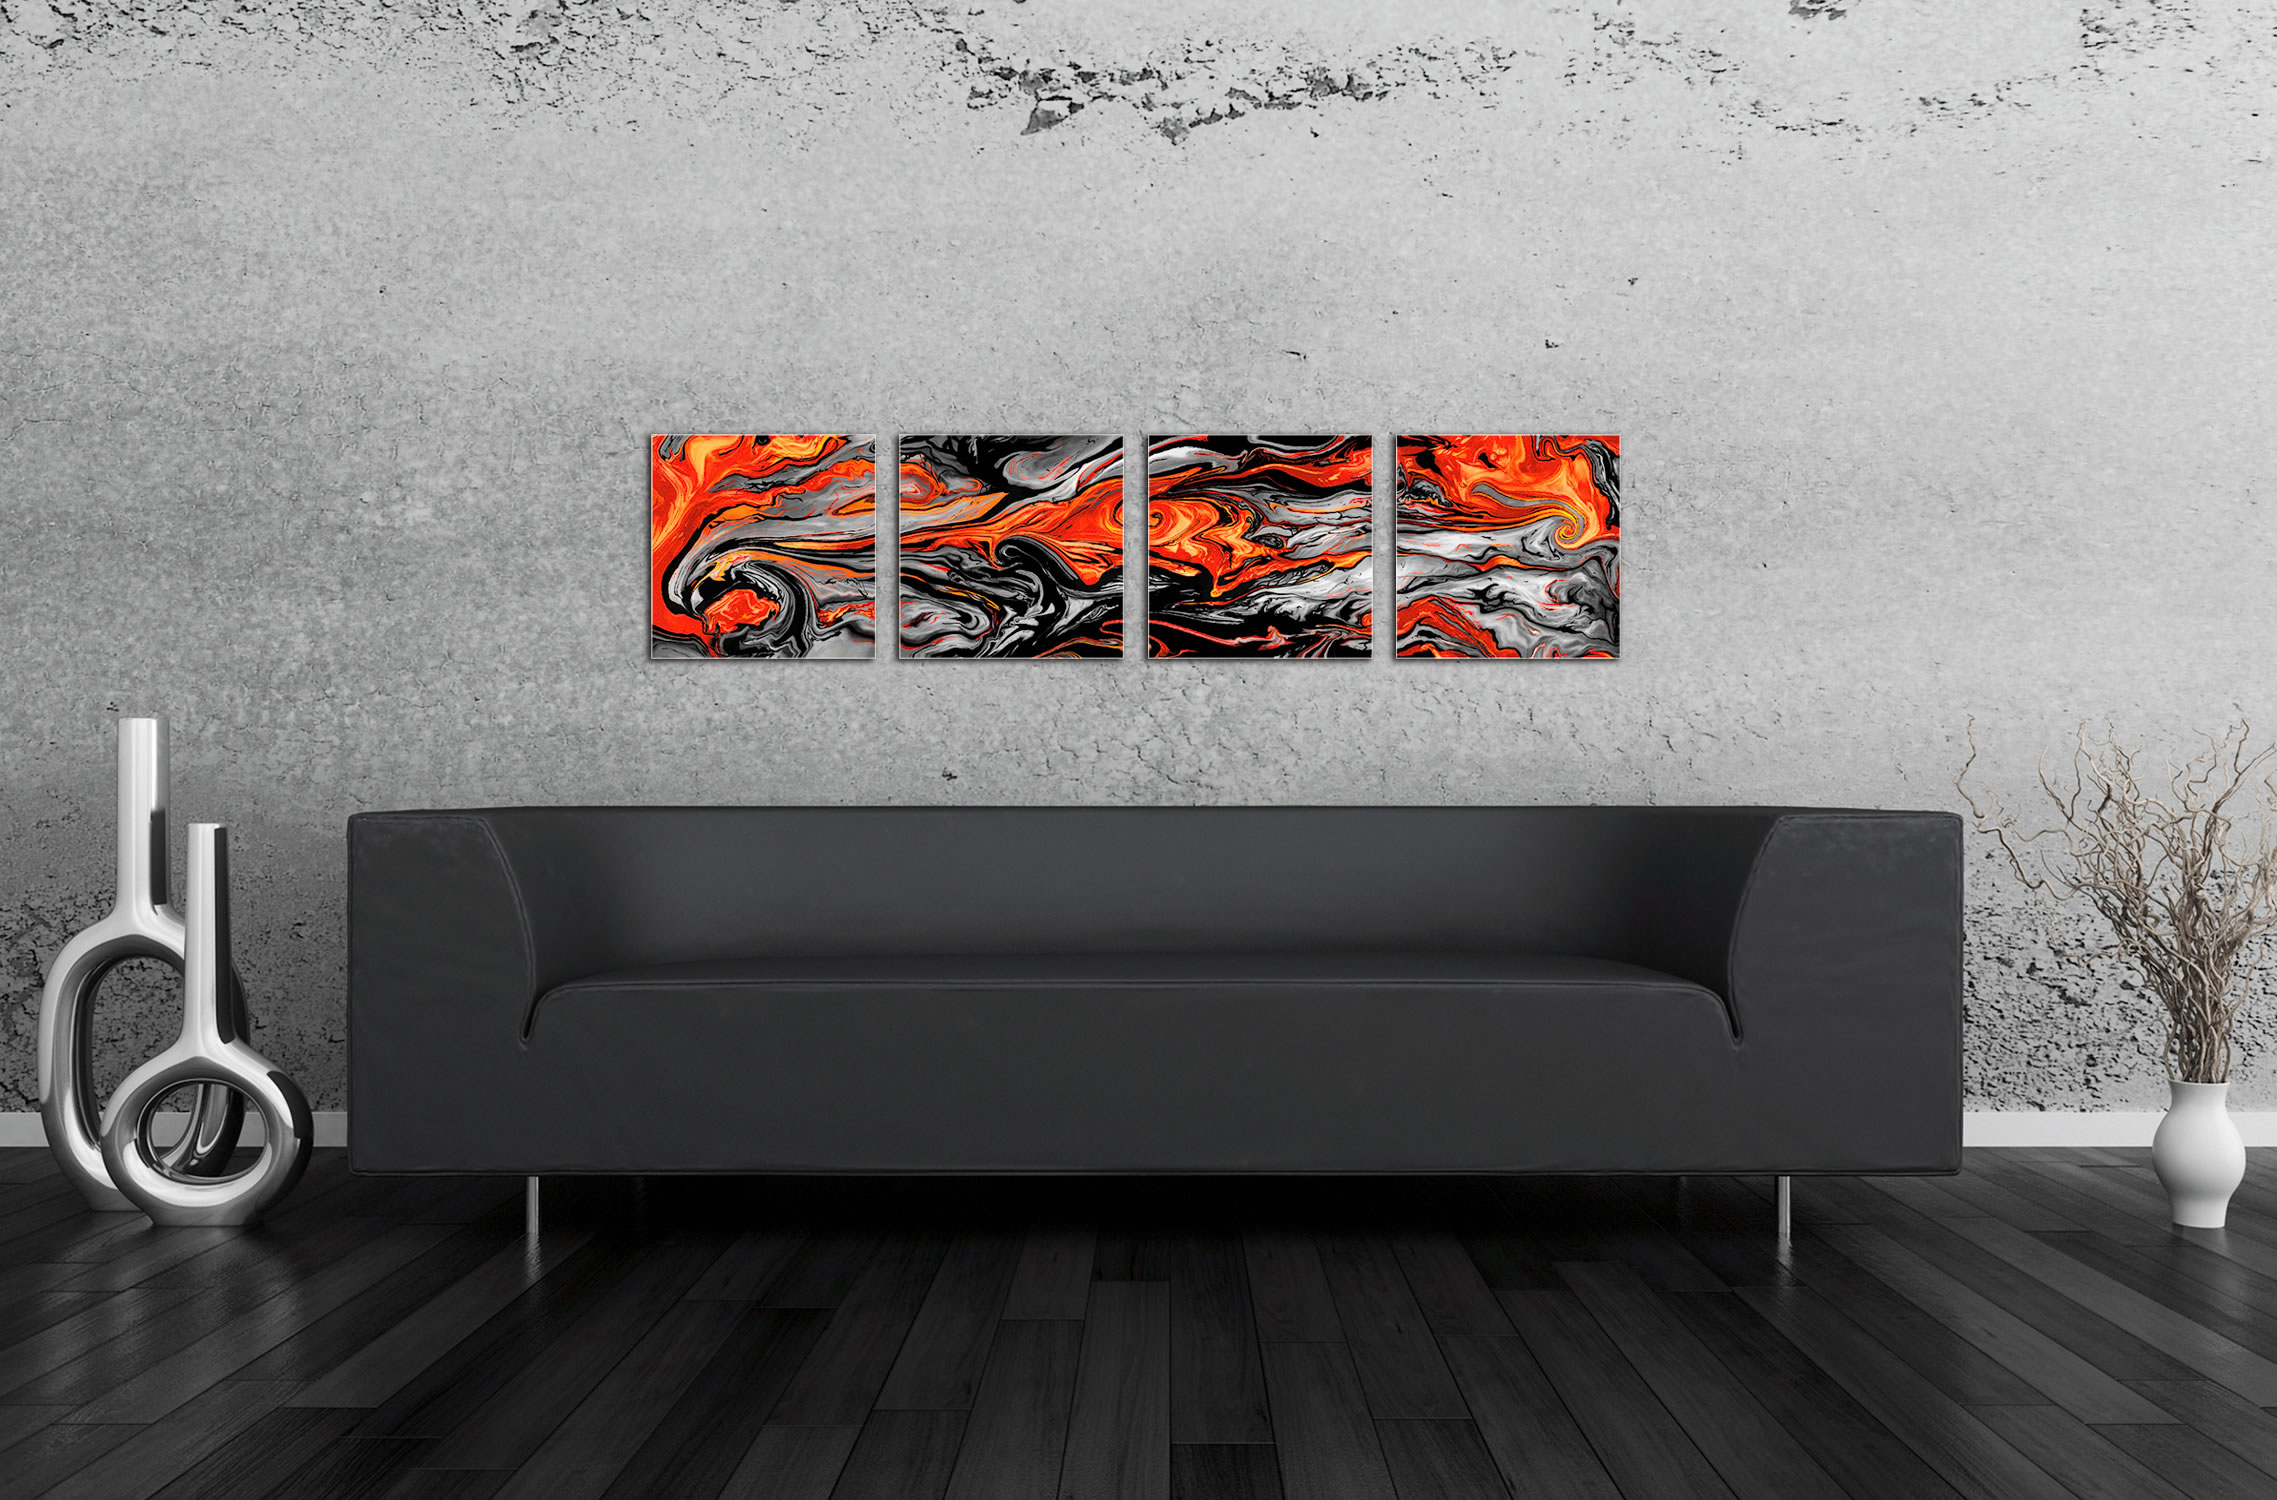 Lava Red - Reverse-Print Acrylic Abstract Art - Lifestyle Image